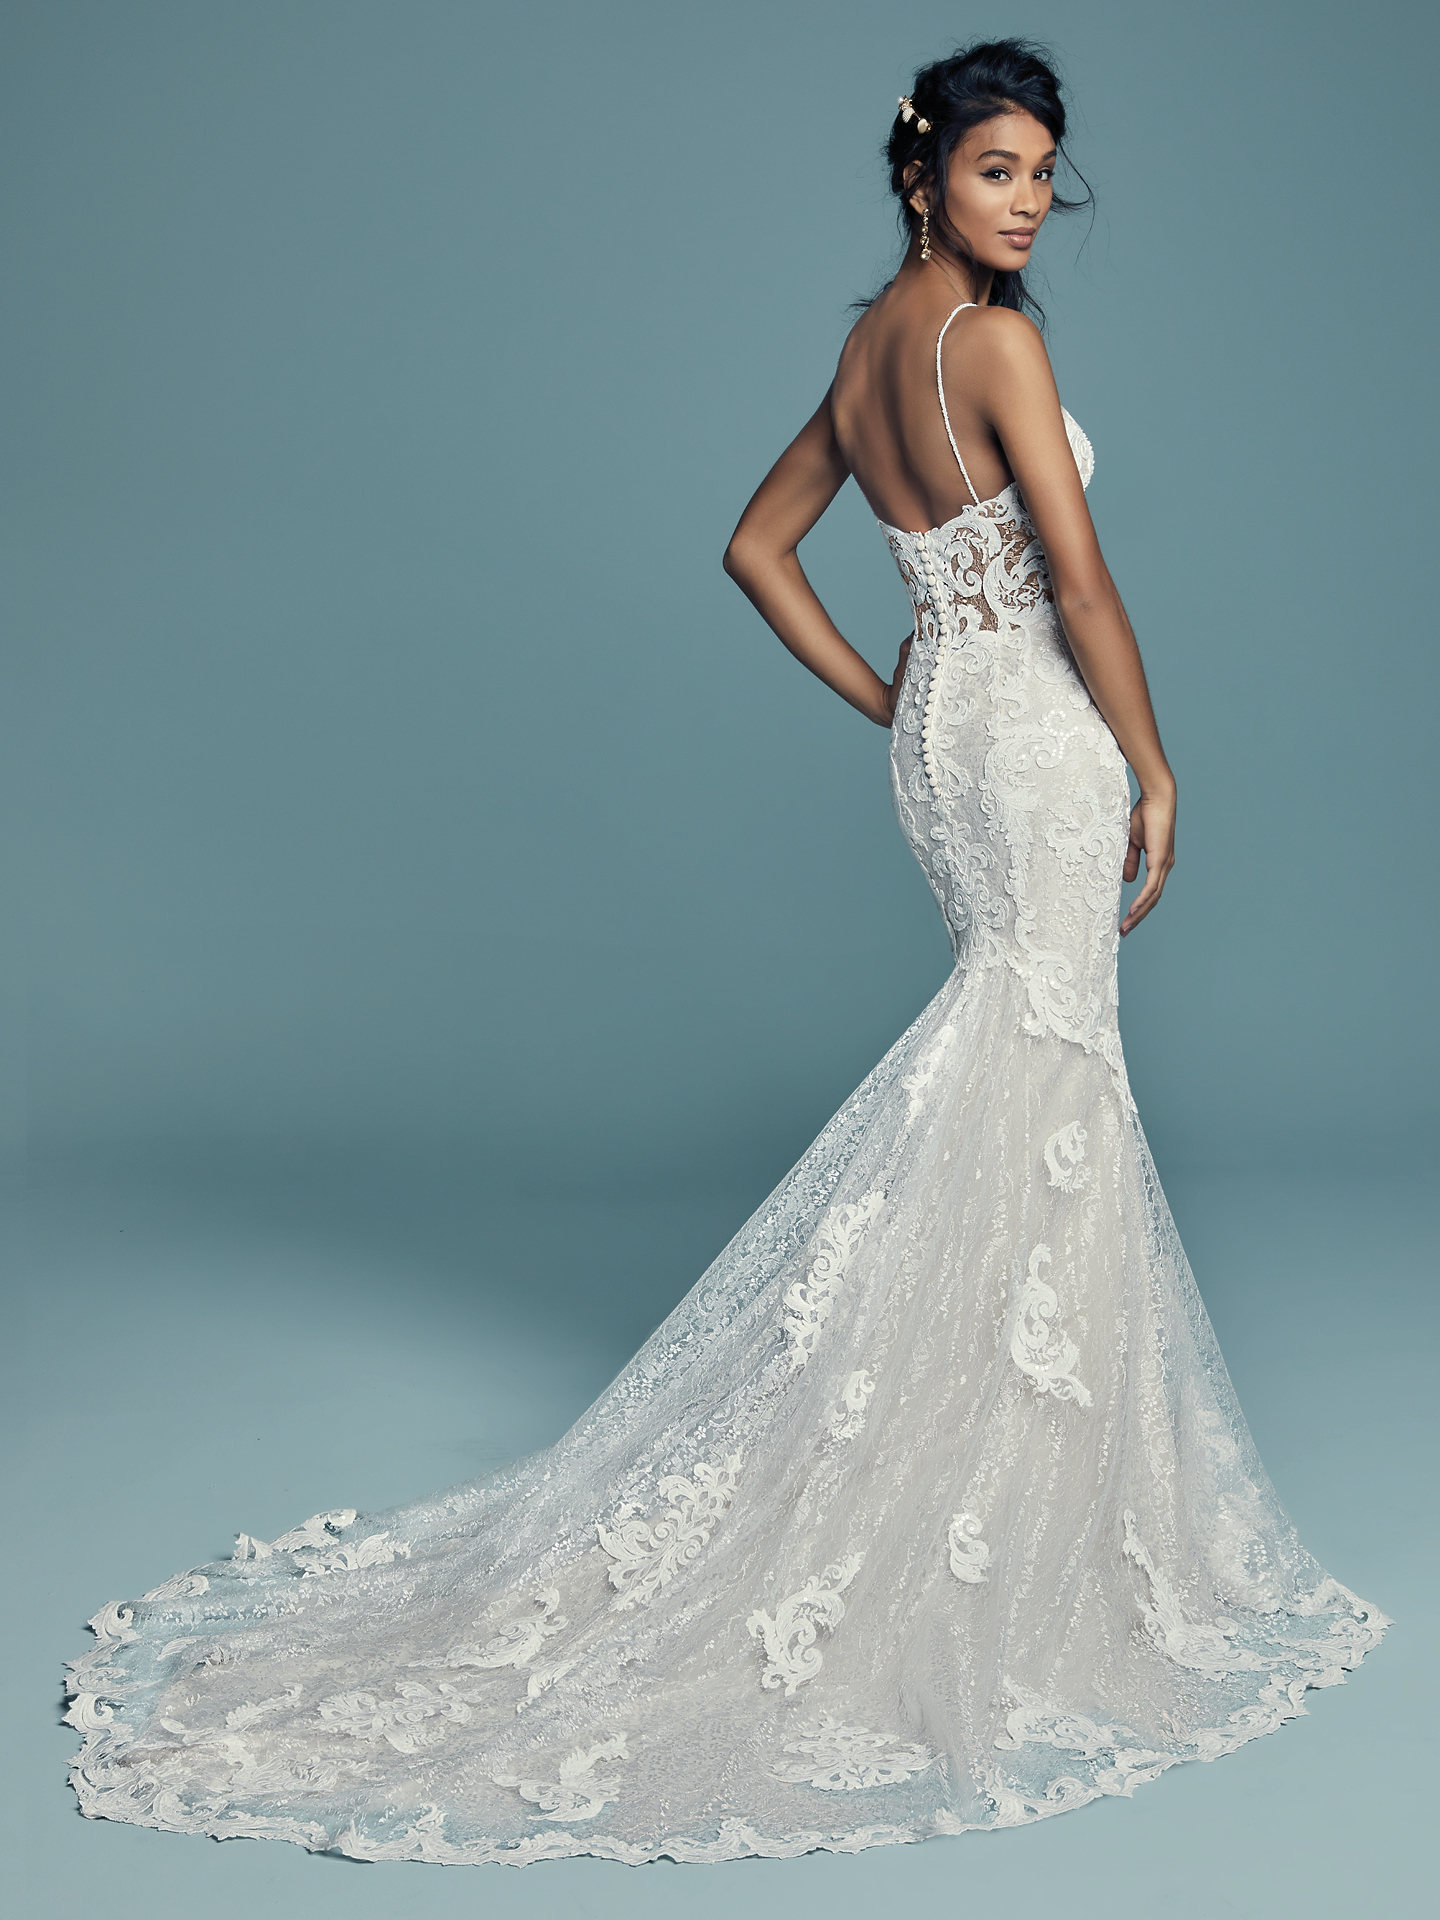 Maggie Sottero - Tuscany Lynette - Back View